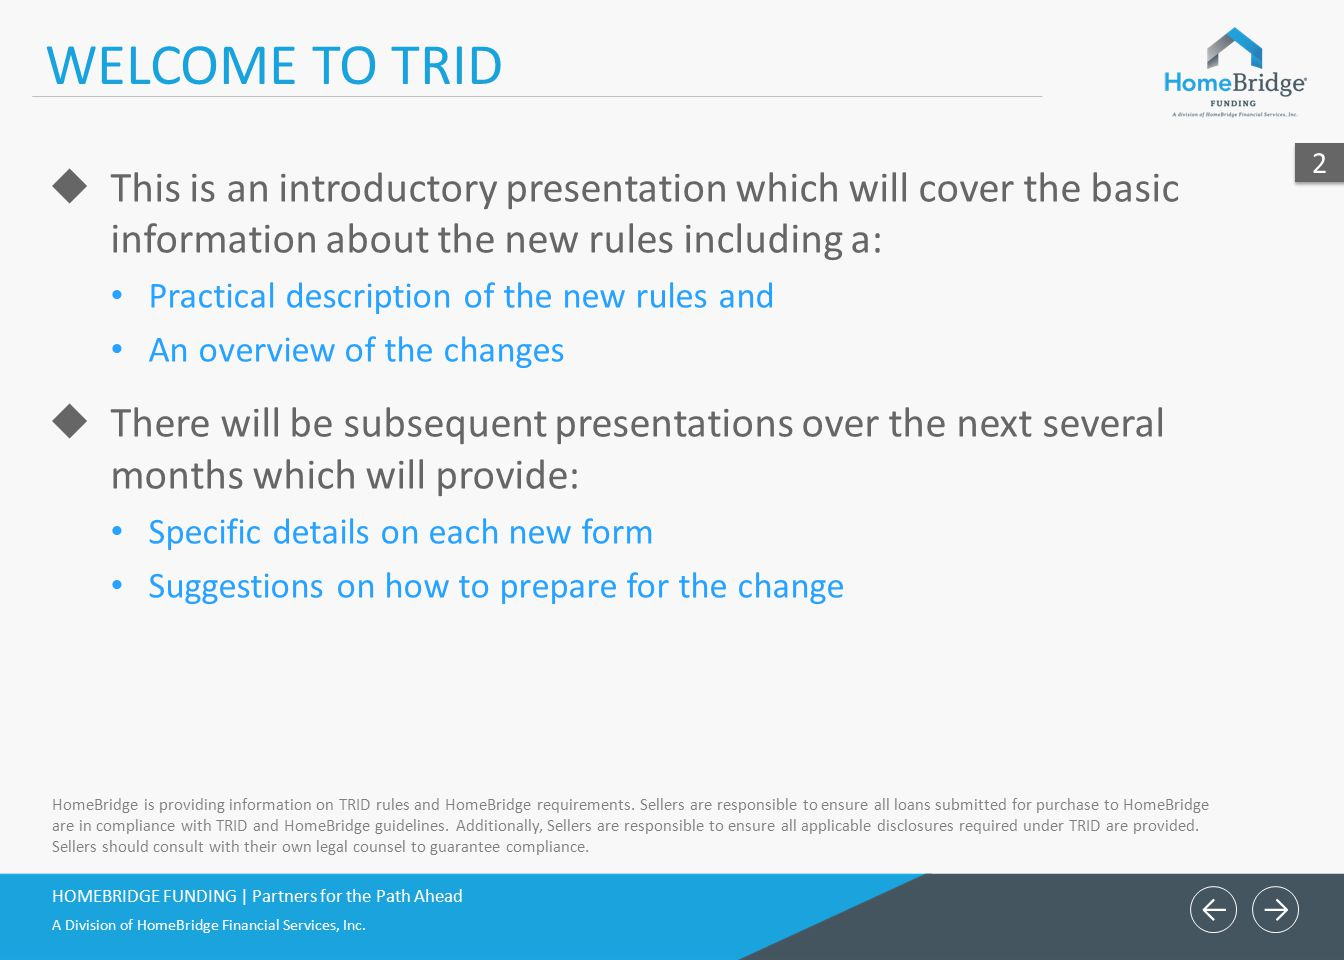 ← WELCOME TO TRID. 2. This is an introductory presentation which will cover the basic information about the new rules including a: